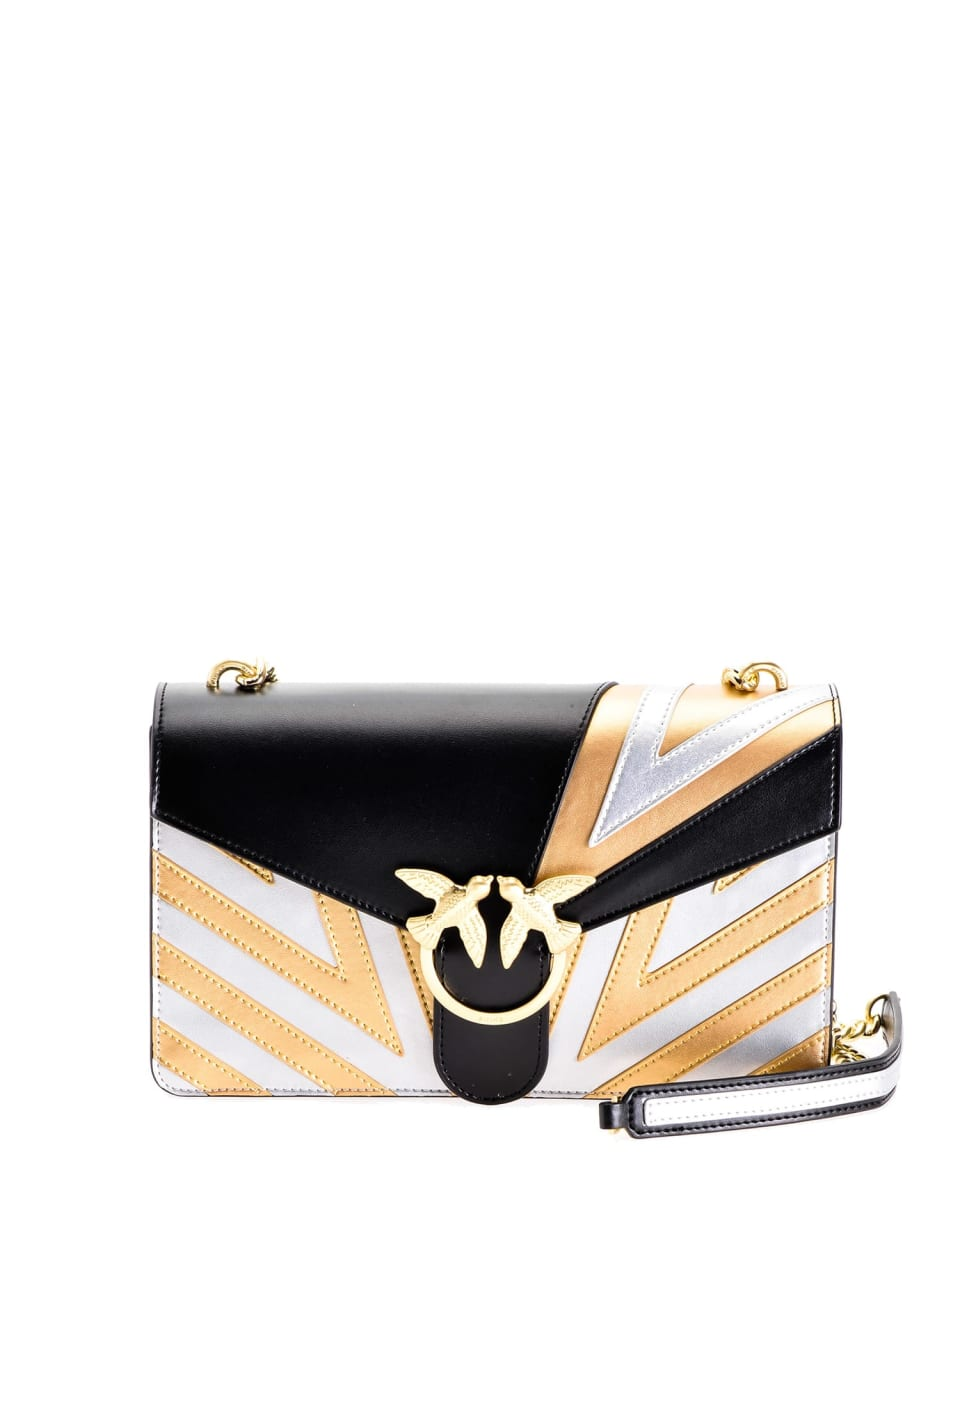 Chevron Love Bag in laminated leather